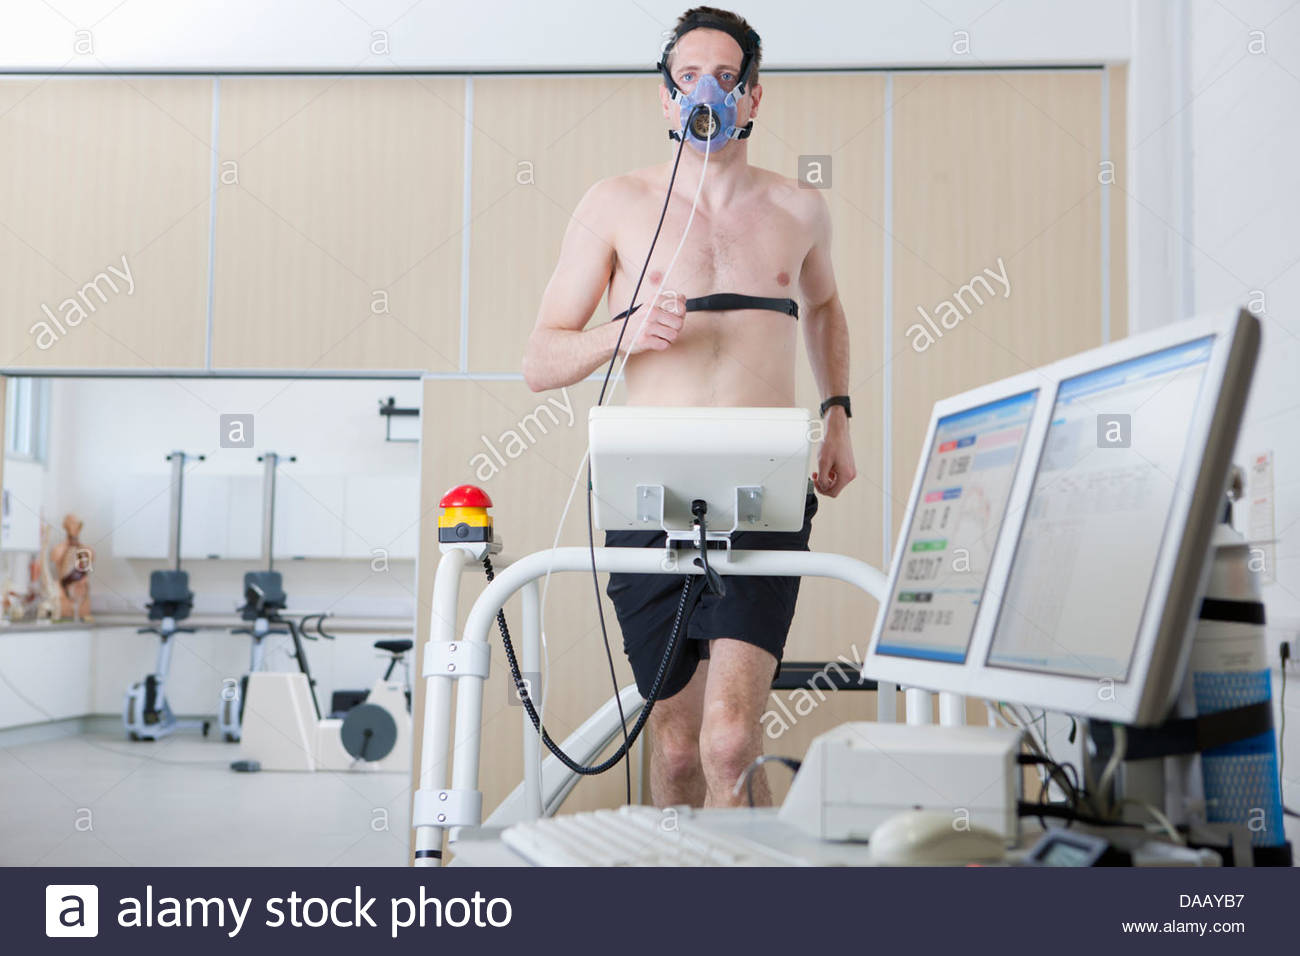 Runner with mask on treadmill in sports science laboratory - Stock Image